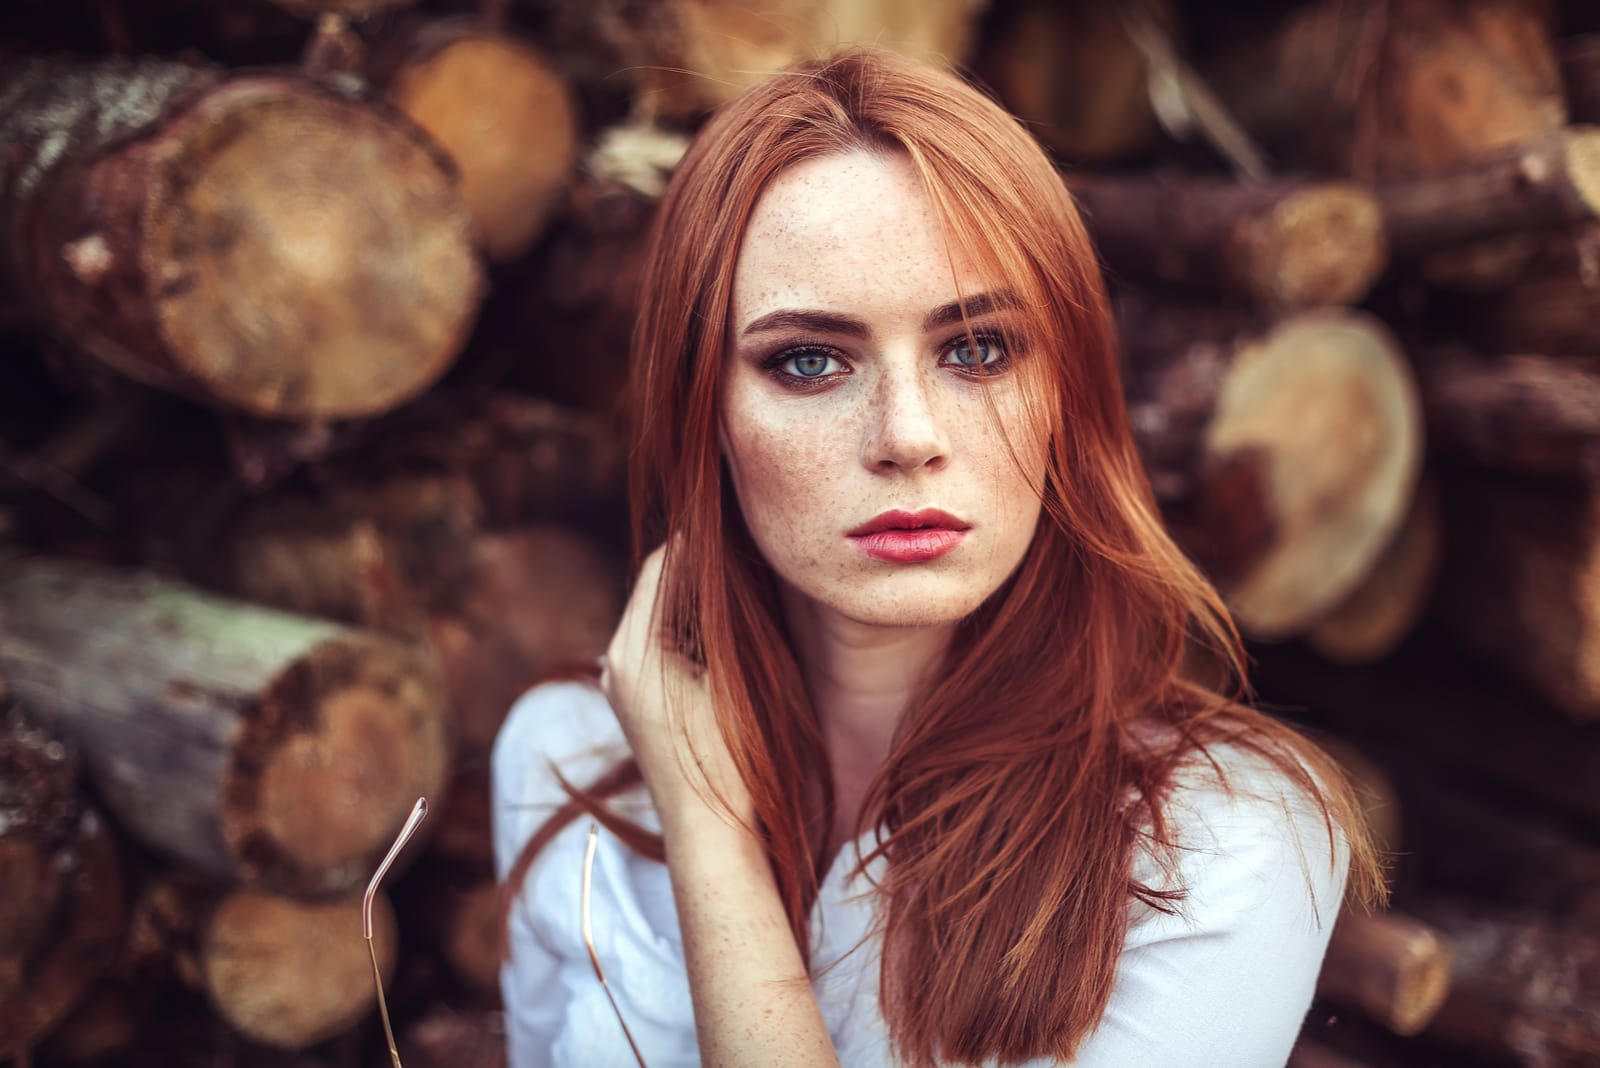 8 Things That Only Guys Who Date Girls With Resting Bitch Face Know